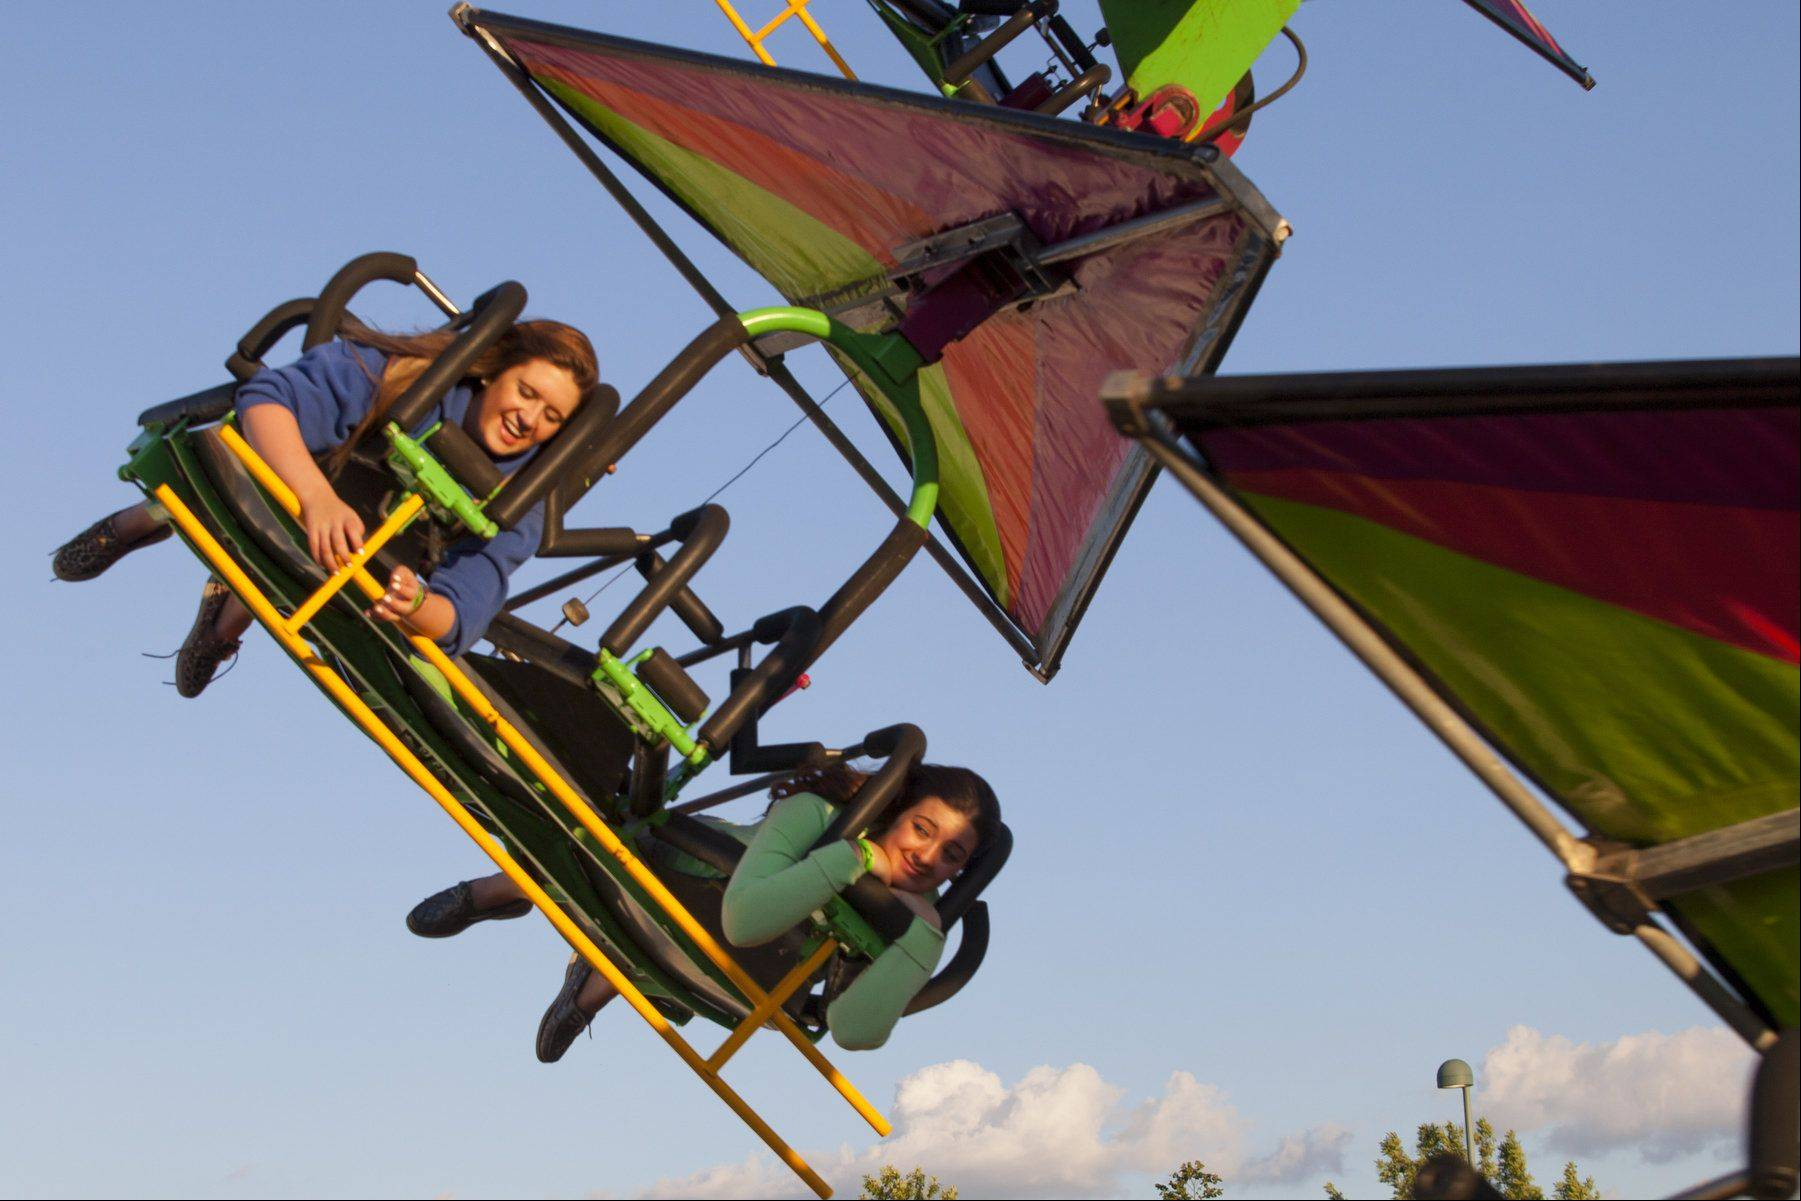 (from left) Alex Schneidei (15) of Woodfield and Alexa Montefusco (15) of Naperville ride gliders at Carol Stream's Summer Carnival, which is held from June 21-24 at the Ross Ferraro Town Center. On Saturday the carnival is free for children with special needs and their families from noon to 2 p.m.